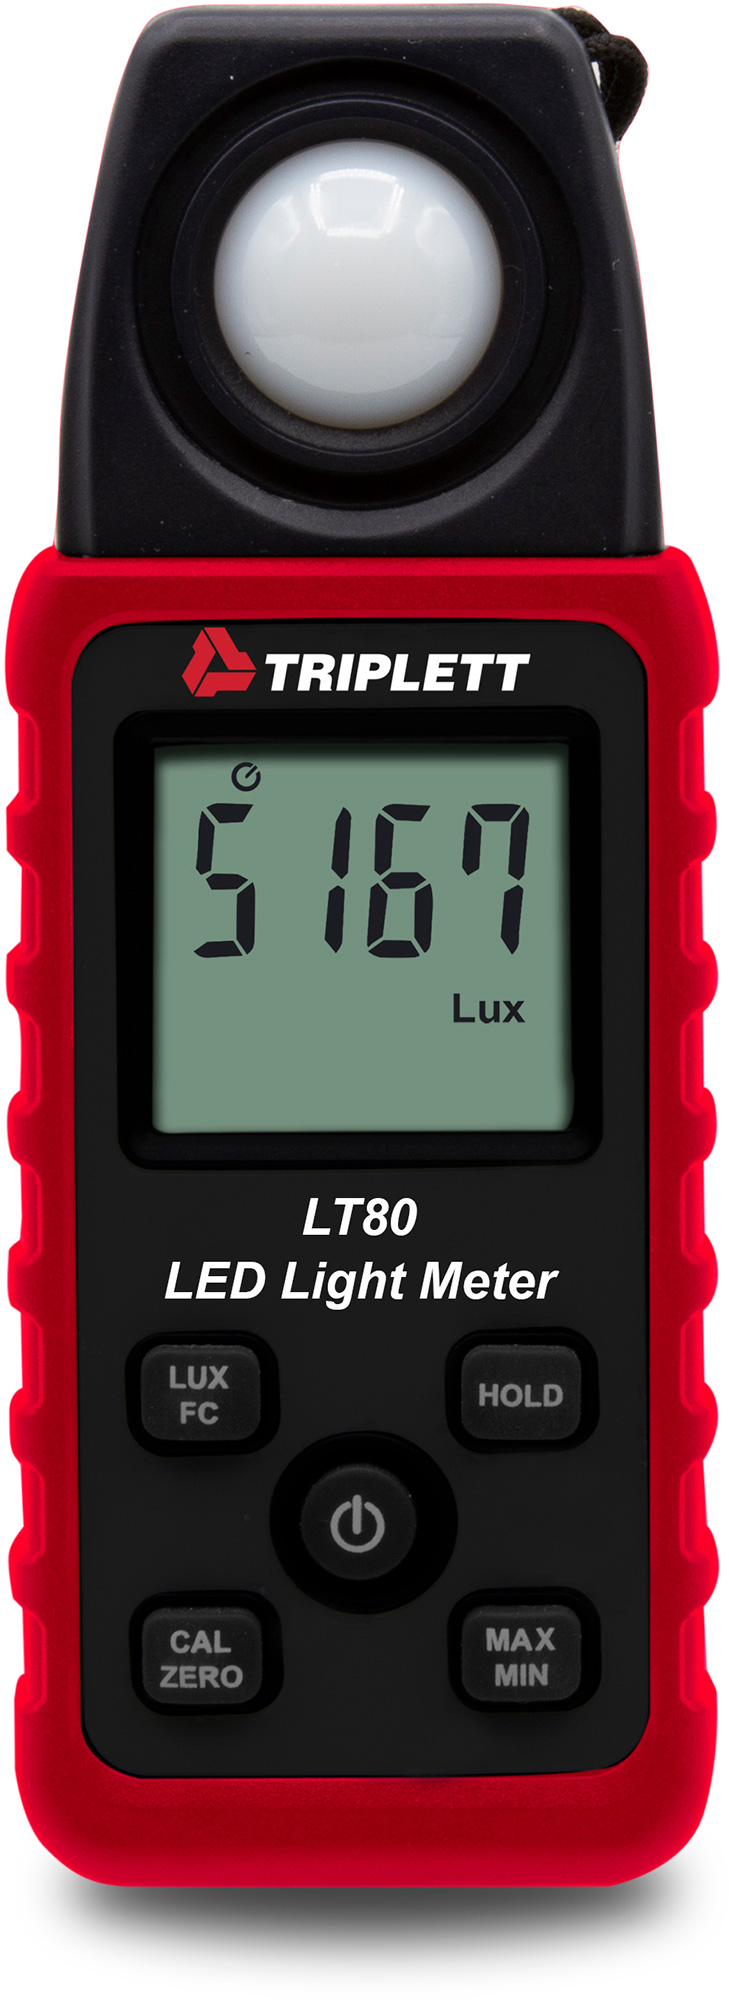 Triplett LT80-NIST LED Light Meter - White LED Light Sources up to 40000 Fc with Traceability to N.I.S.T. TRIPL-LT80-NIST